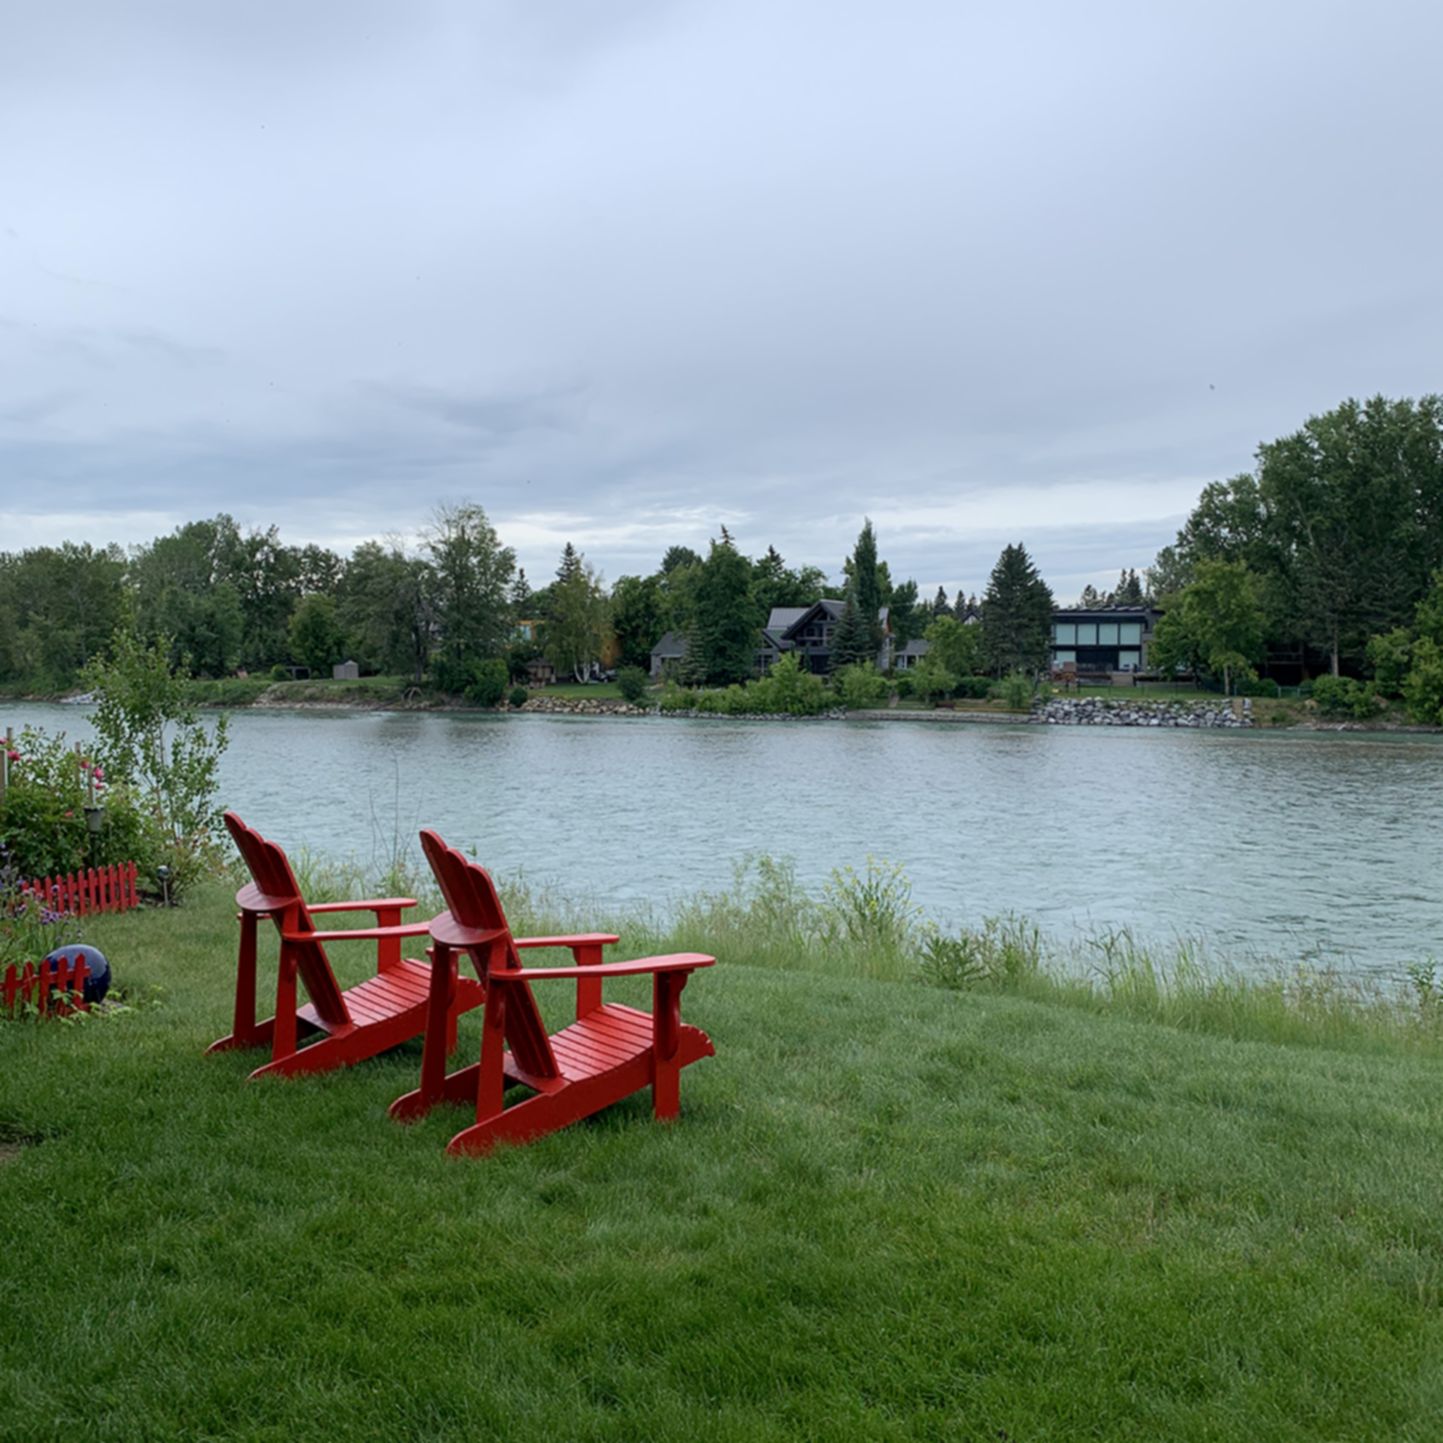 A wooden bench sitting next to a body of water at Along River Ridge Bed and Breakfast.